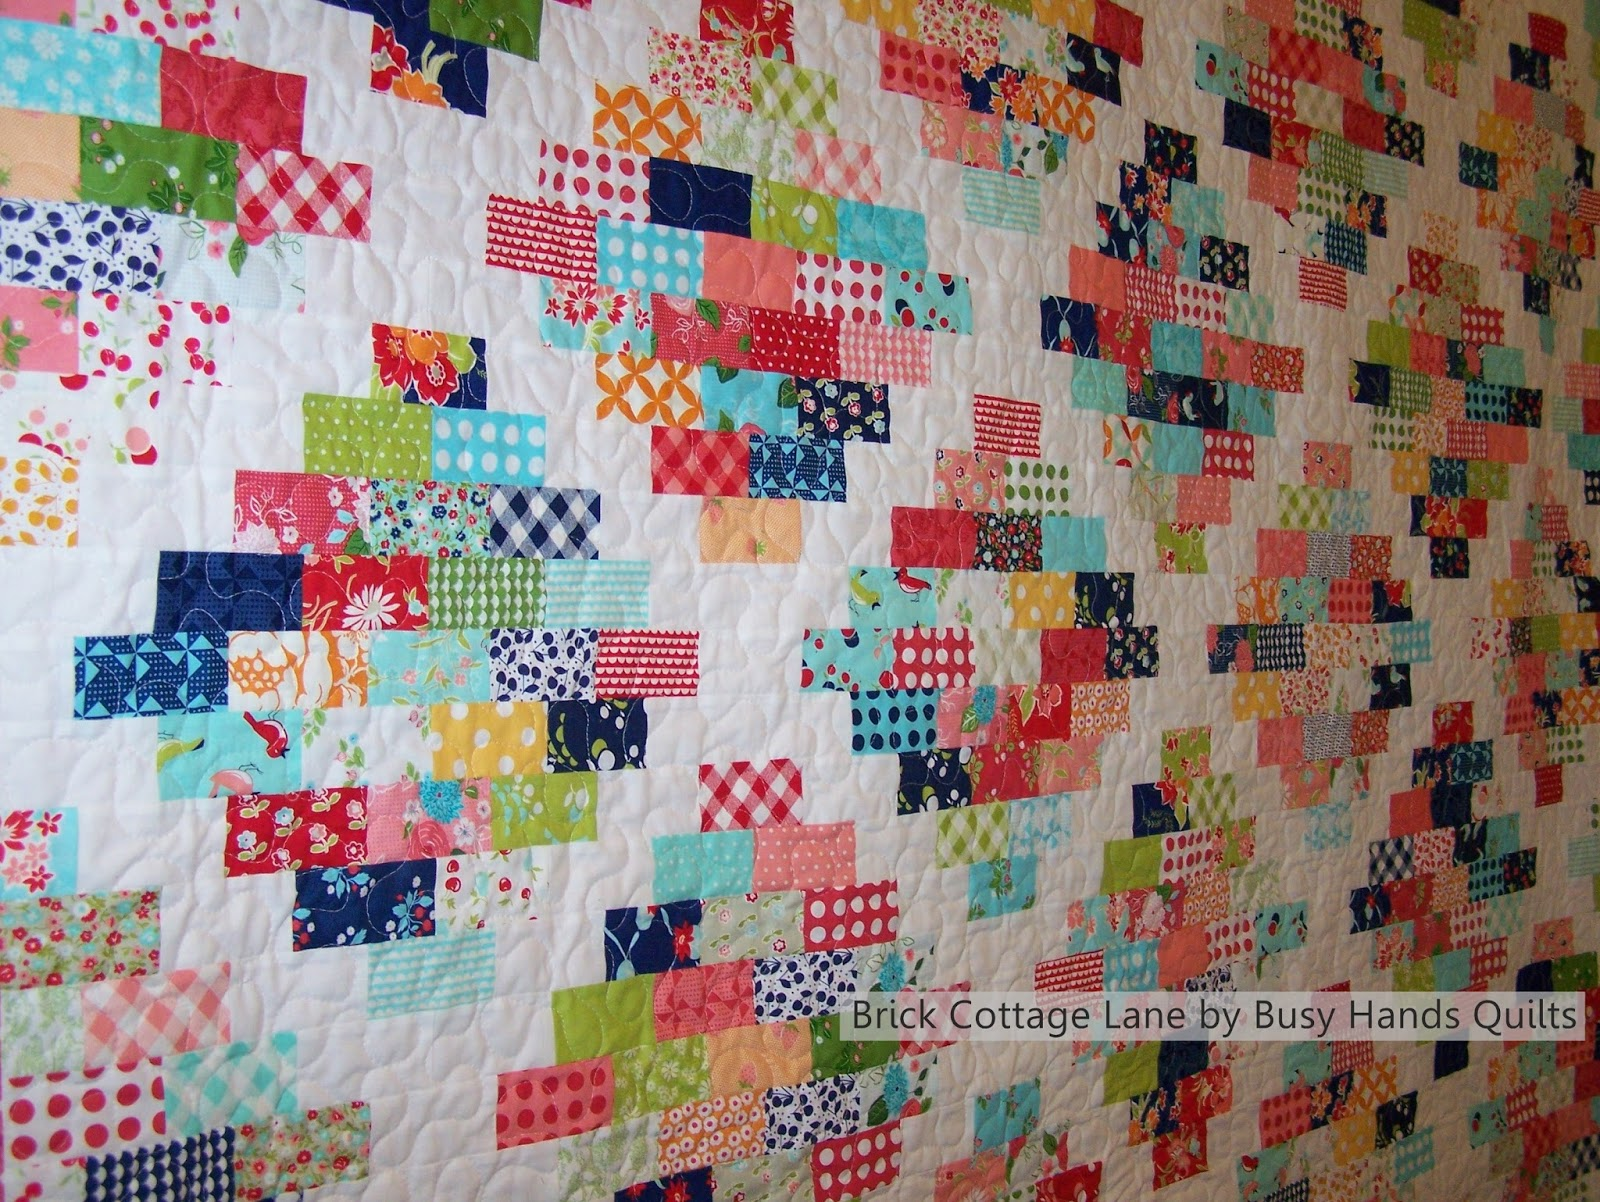 Busy Hands Quilts Blogger S Quilt Festival Brick Cottage